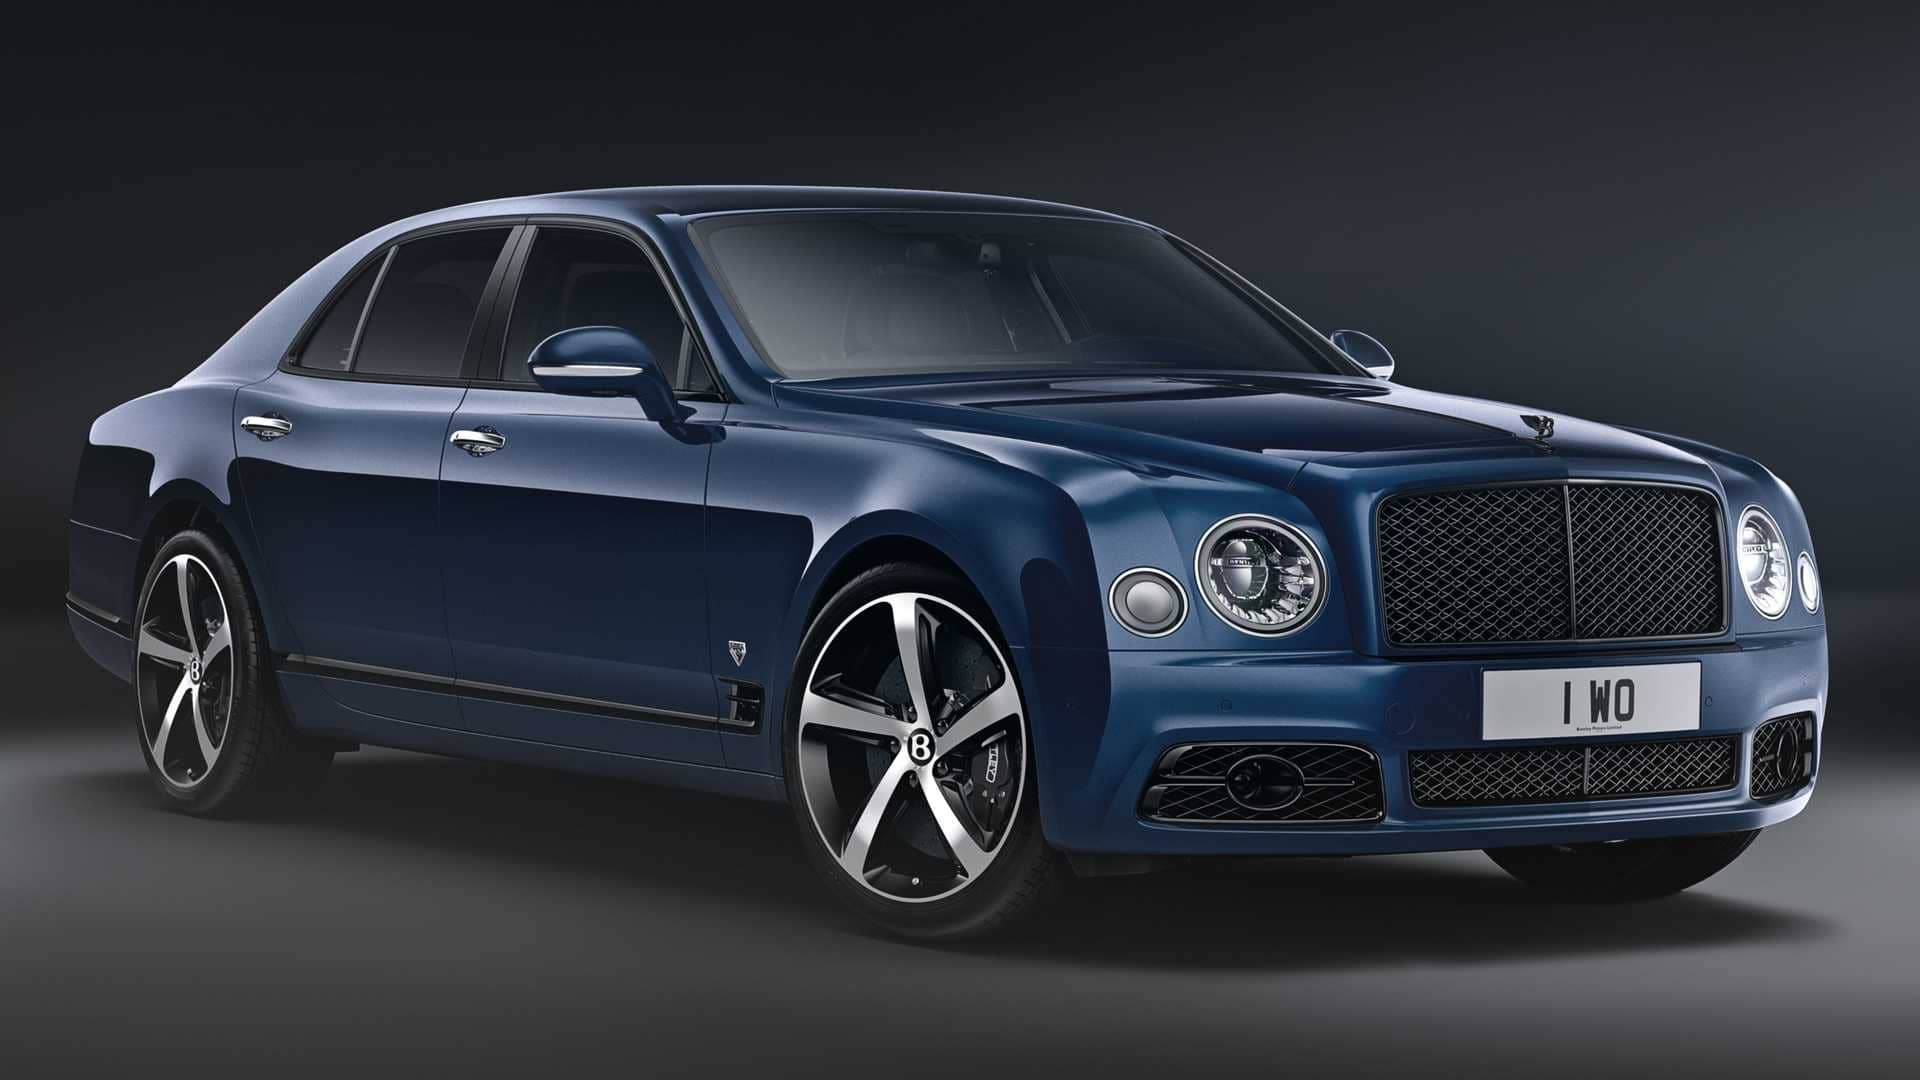 bentley-mulsanne-6-75-edition-by-mullinerqq